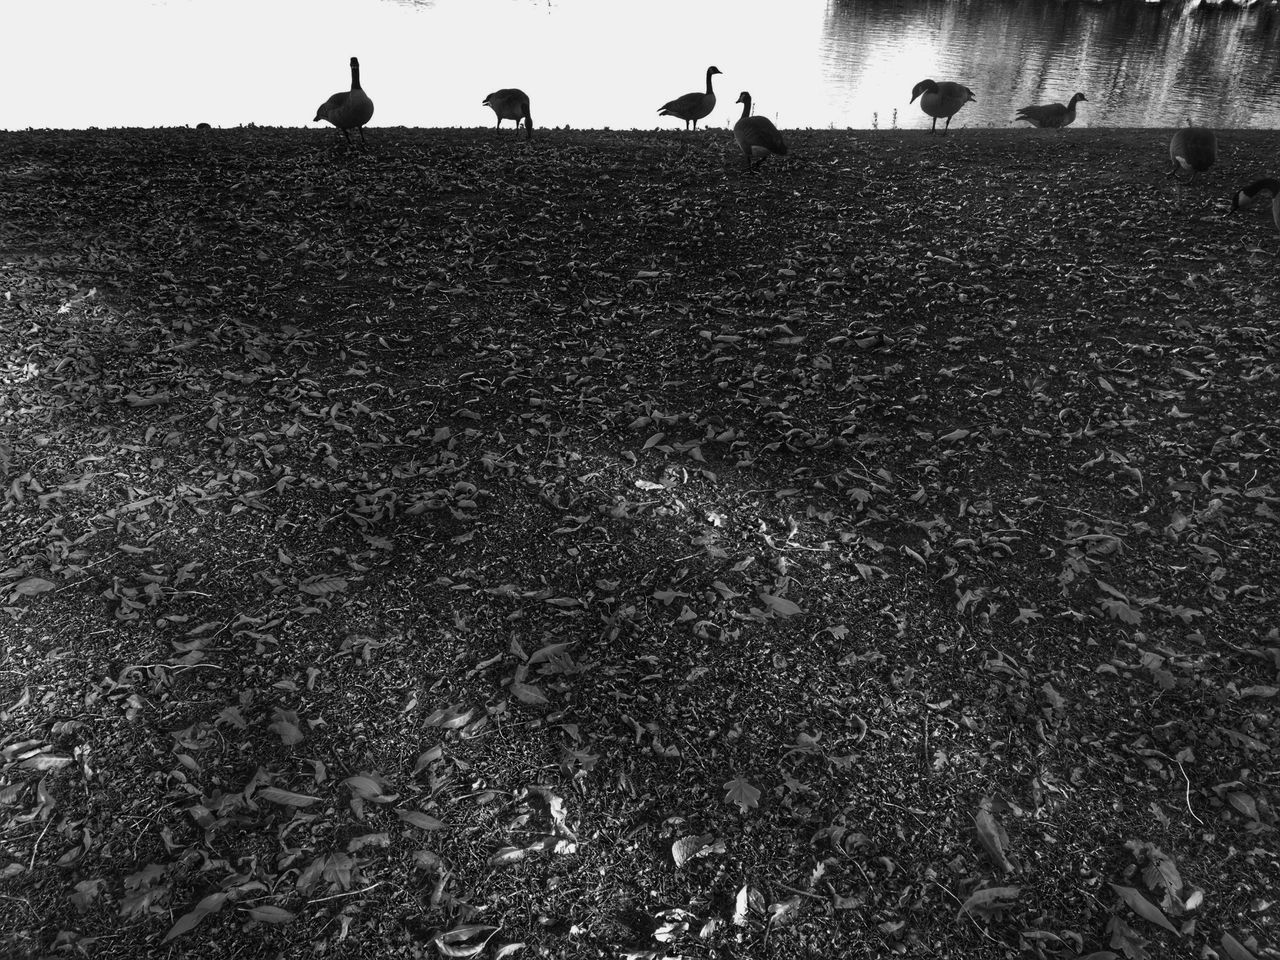 Silhouettes Simplicity Silhouette_collection Geese Photography Geese Textured  Background Texture Backgrounds Background Photography Blackandwhite Black And White Black And White Collection  Darkness And Light Silhoutte Photography Nature Naturelovers Nature On Your Doorstep Nature Landscape Nature Lovers Autumn Leaves Fall Beauty Fall Collection Panoramic Panoramic Beauty  Lake Reflection